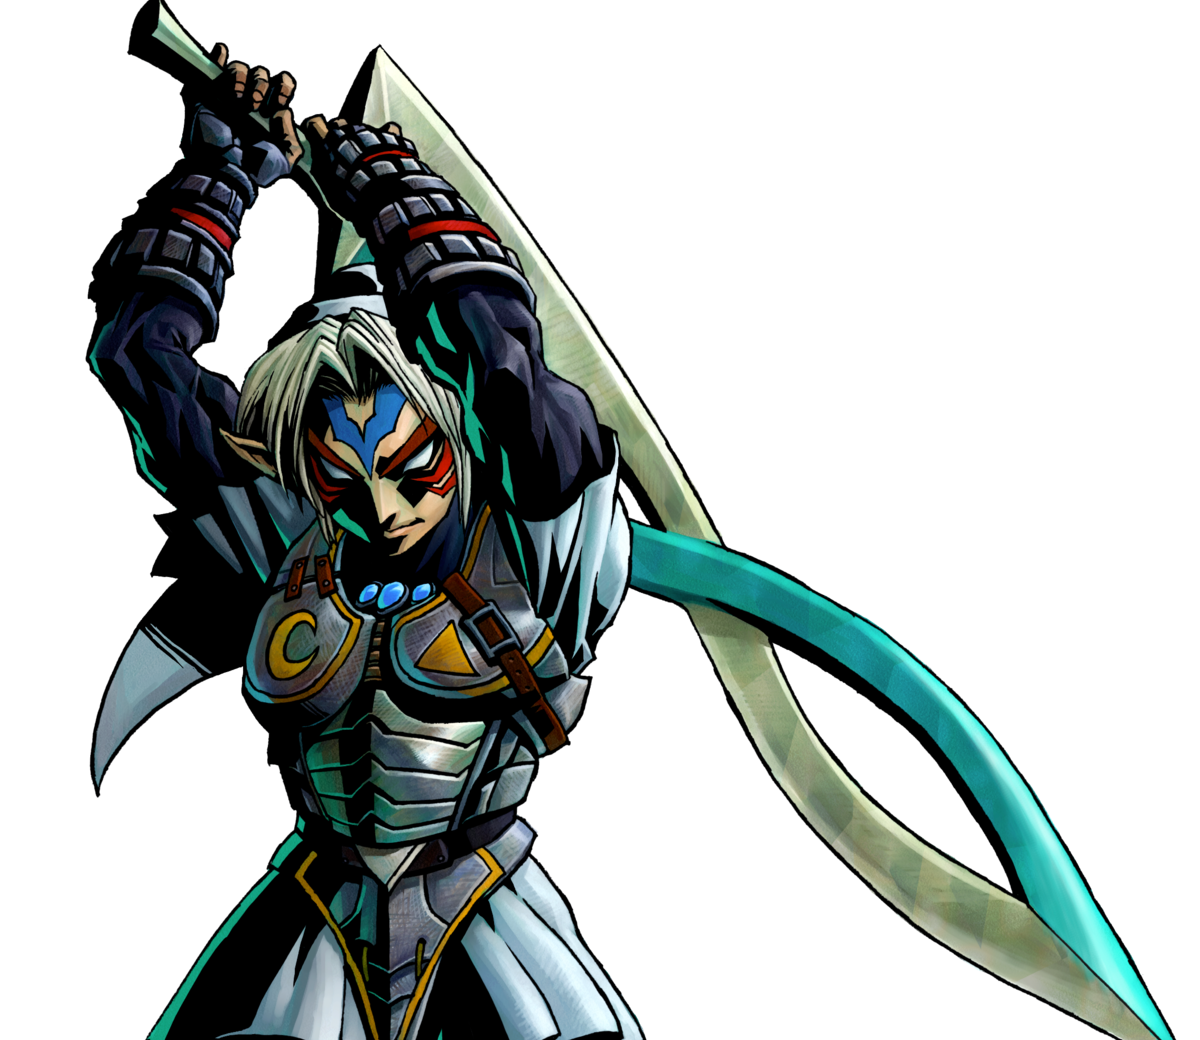 Fierce Deity Link and Sword